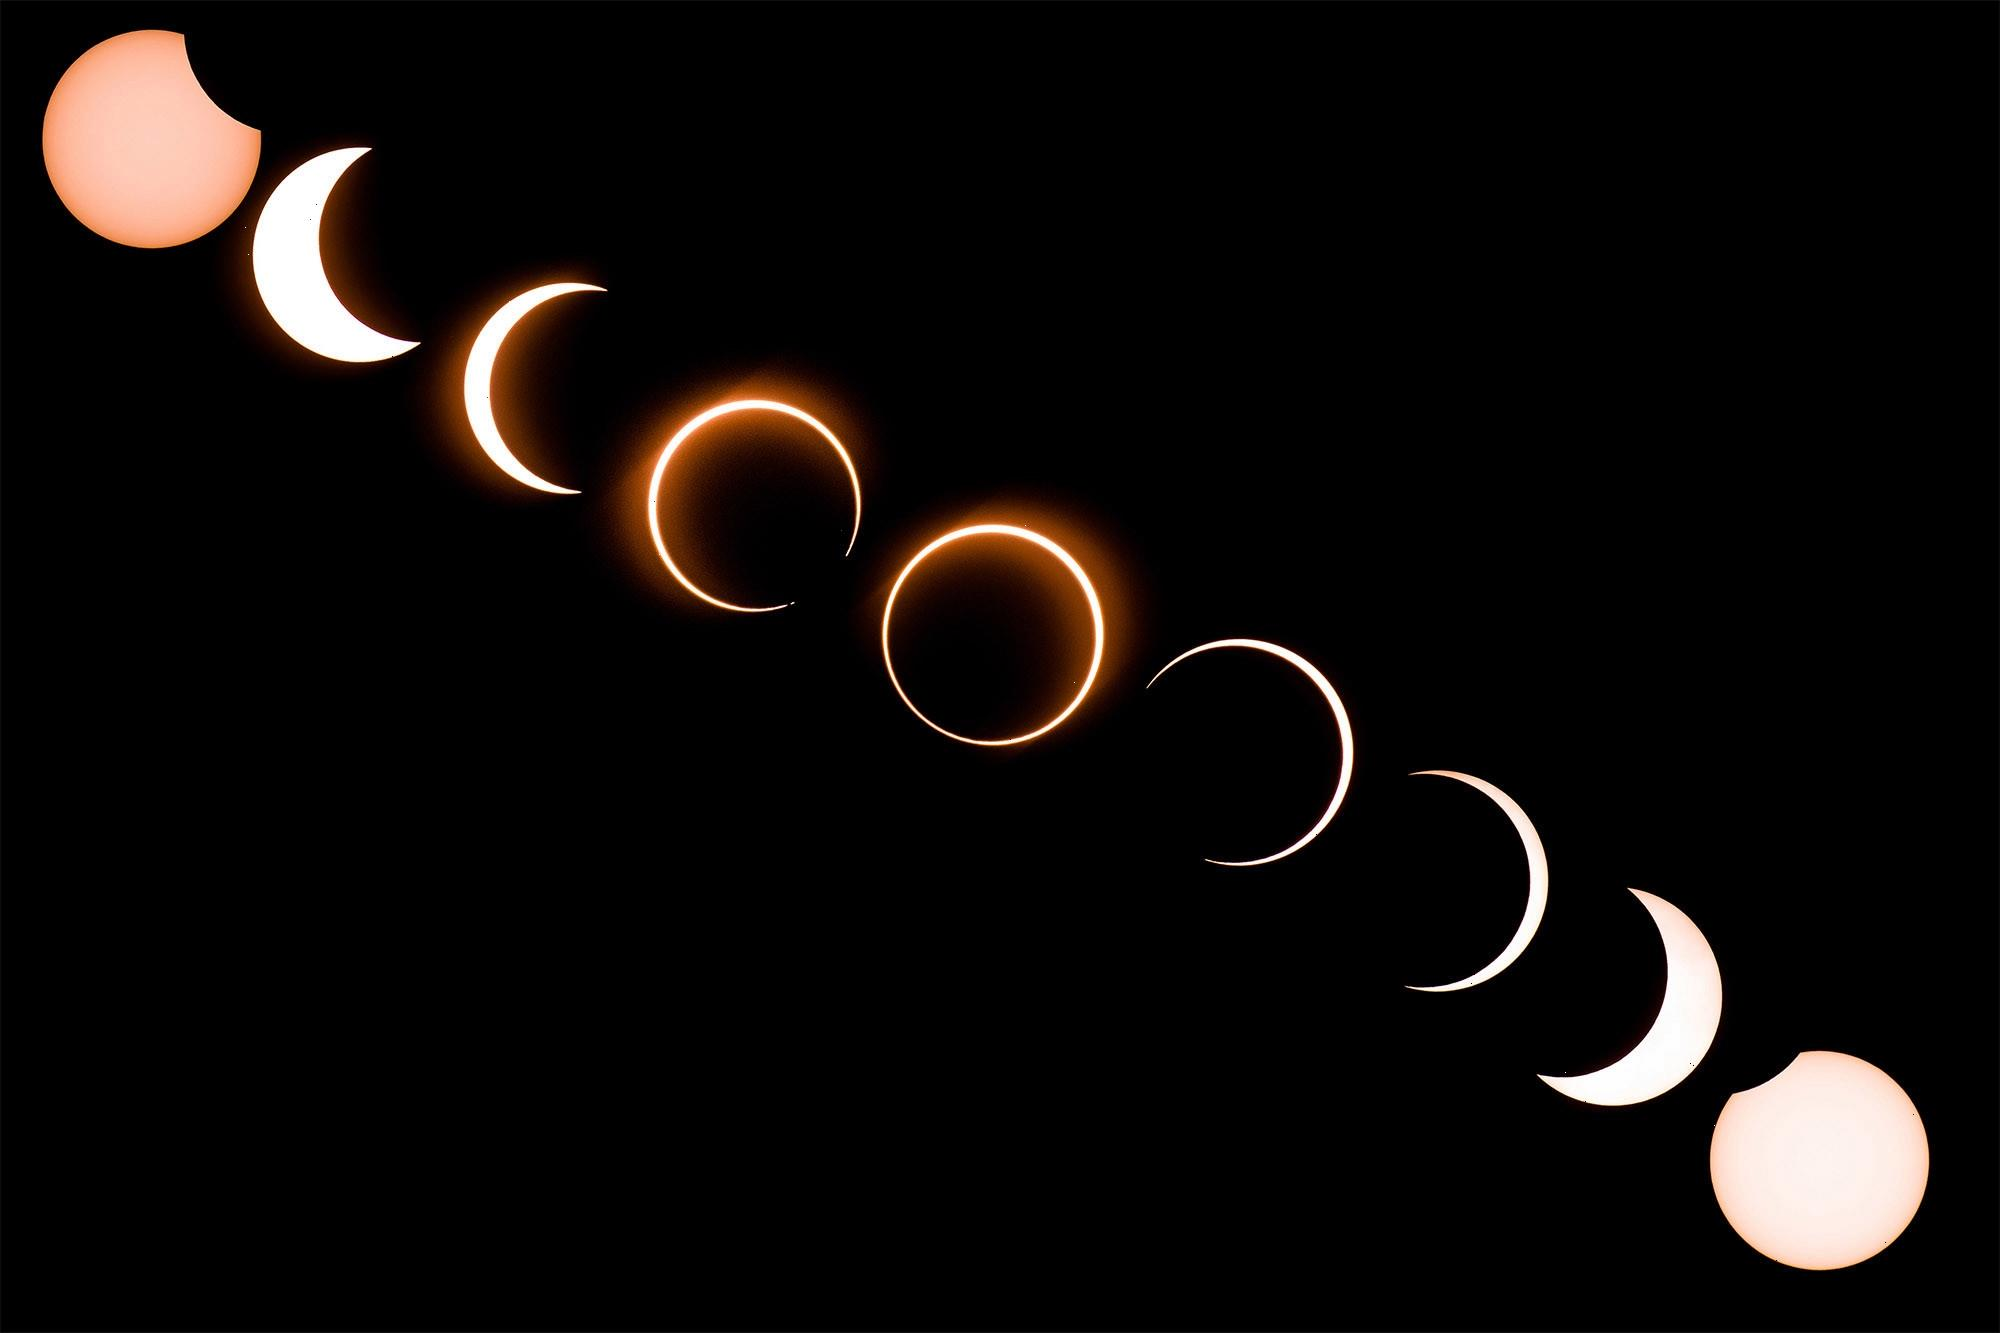 'Ring of Fire' solar eclipse 2021: When, where and how to see it